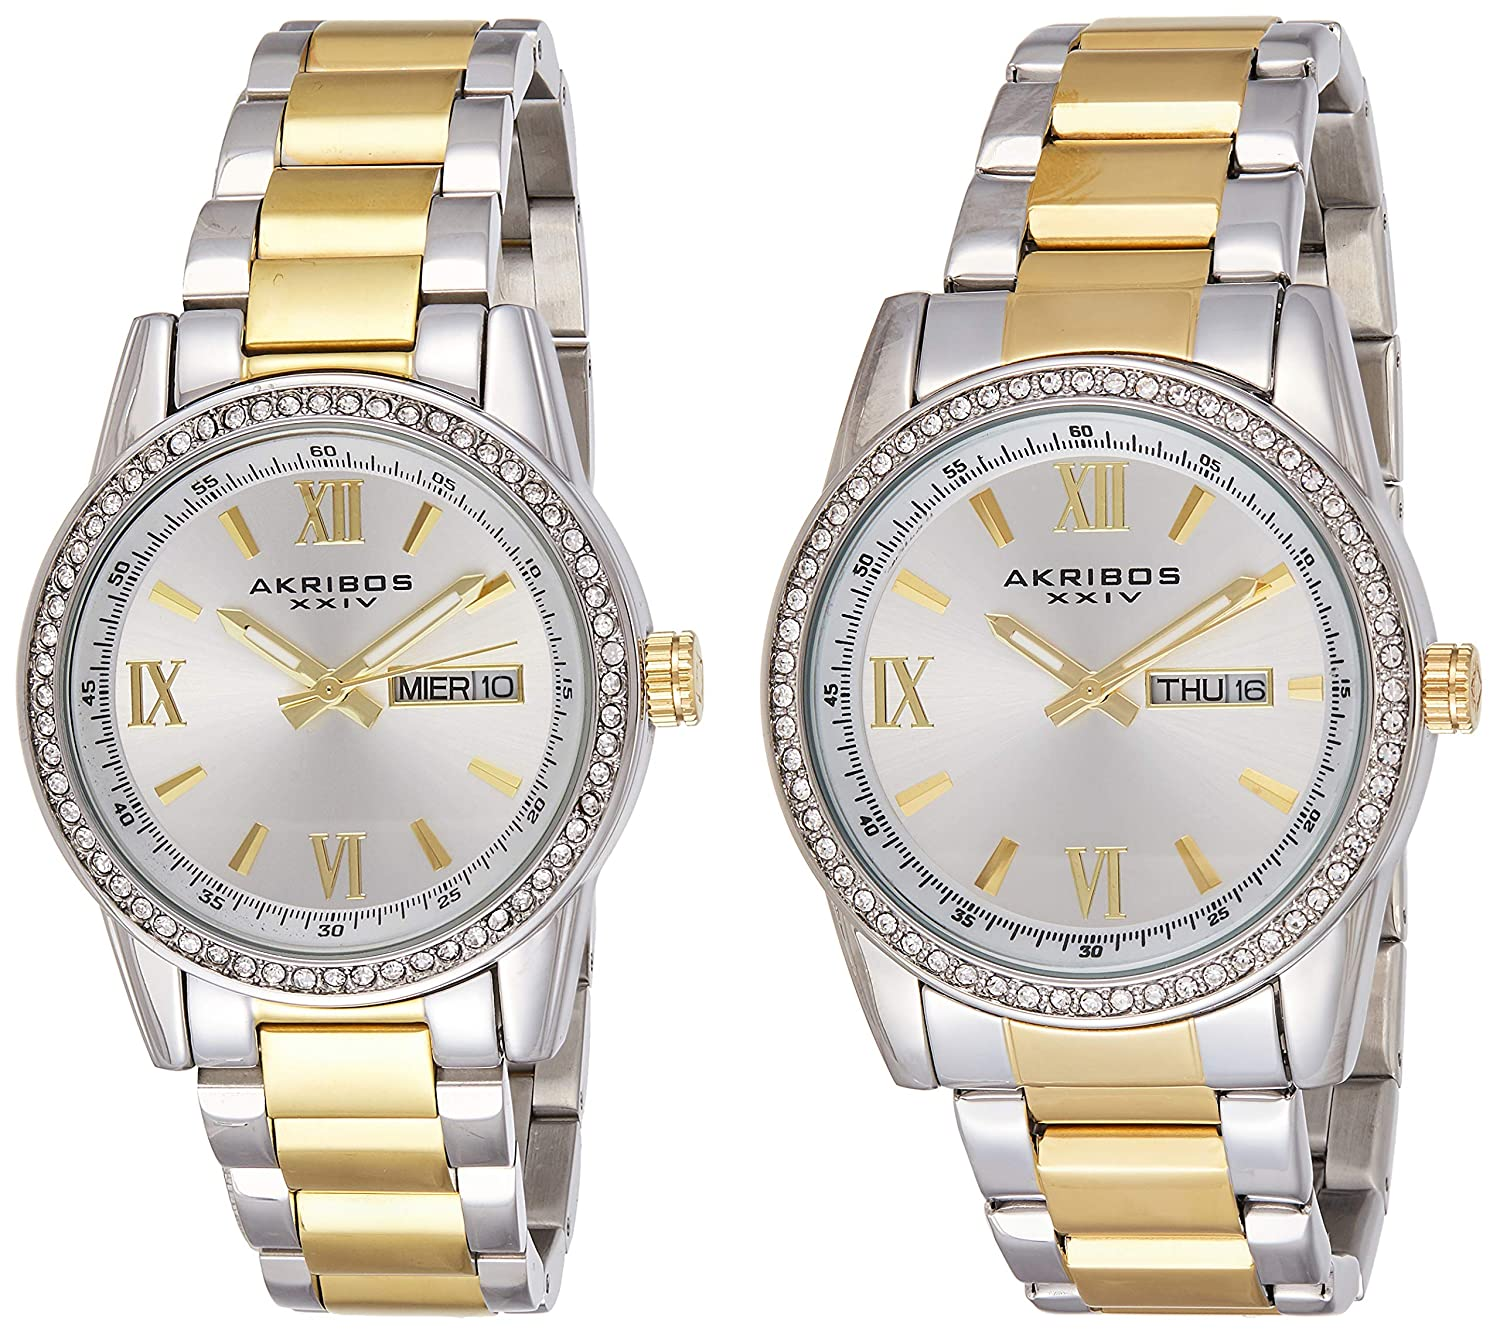 Akribos XXIV Men s and Women s Watch Matching Set – His and Her and Crystal Filled Watch Roman Numerals with Date Window on Stainless Steel Bracelet – AK888